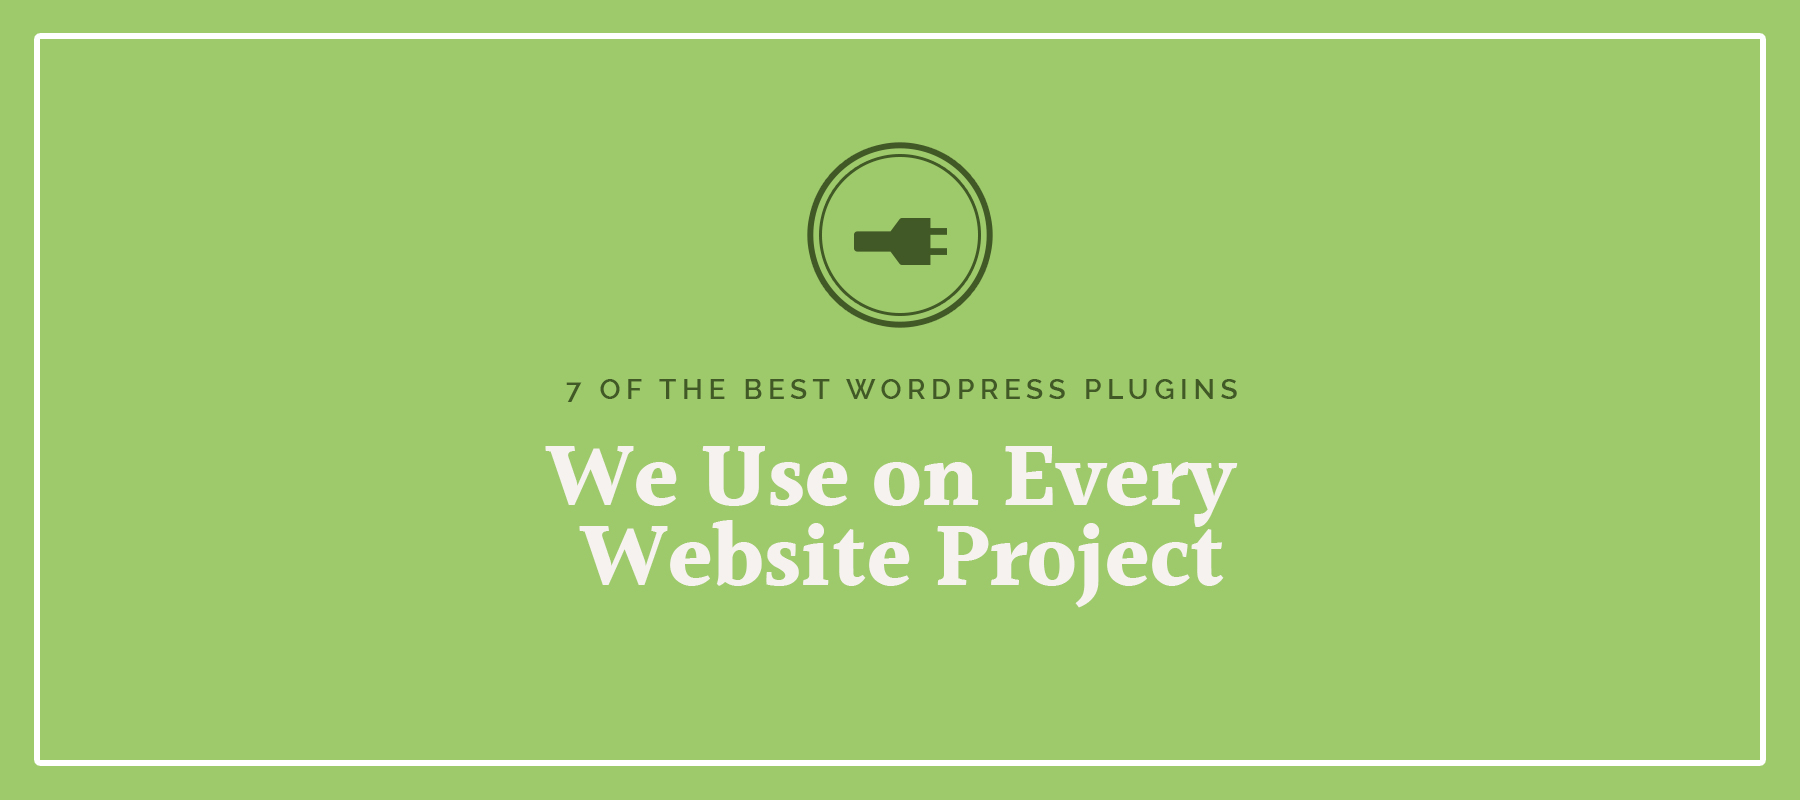 7 Of The Best WordPress Plugins We Use On Every Website Project